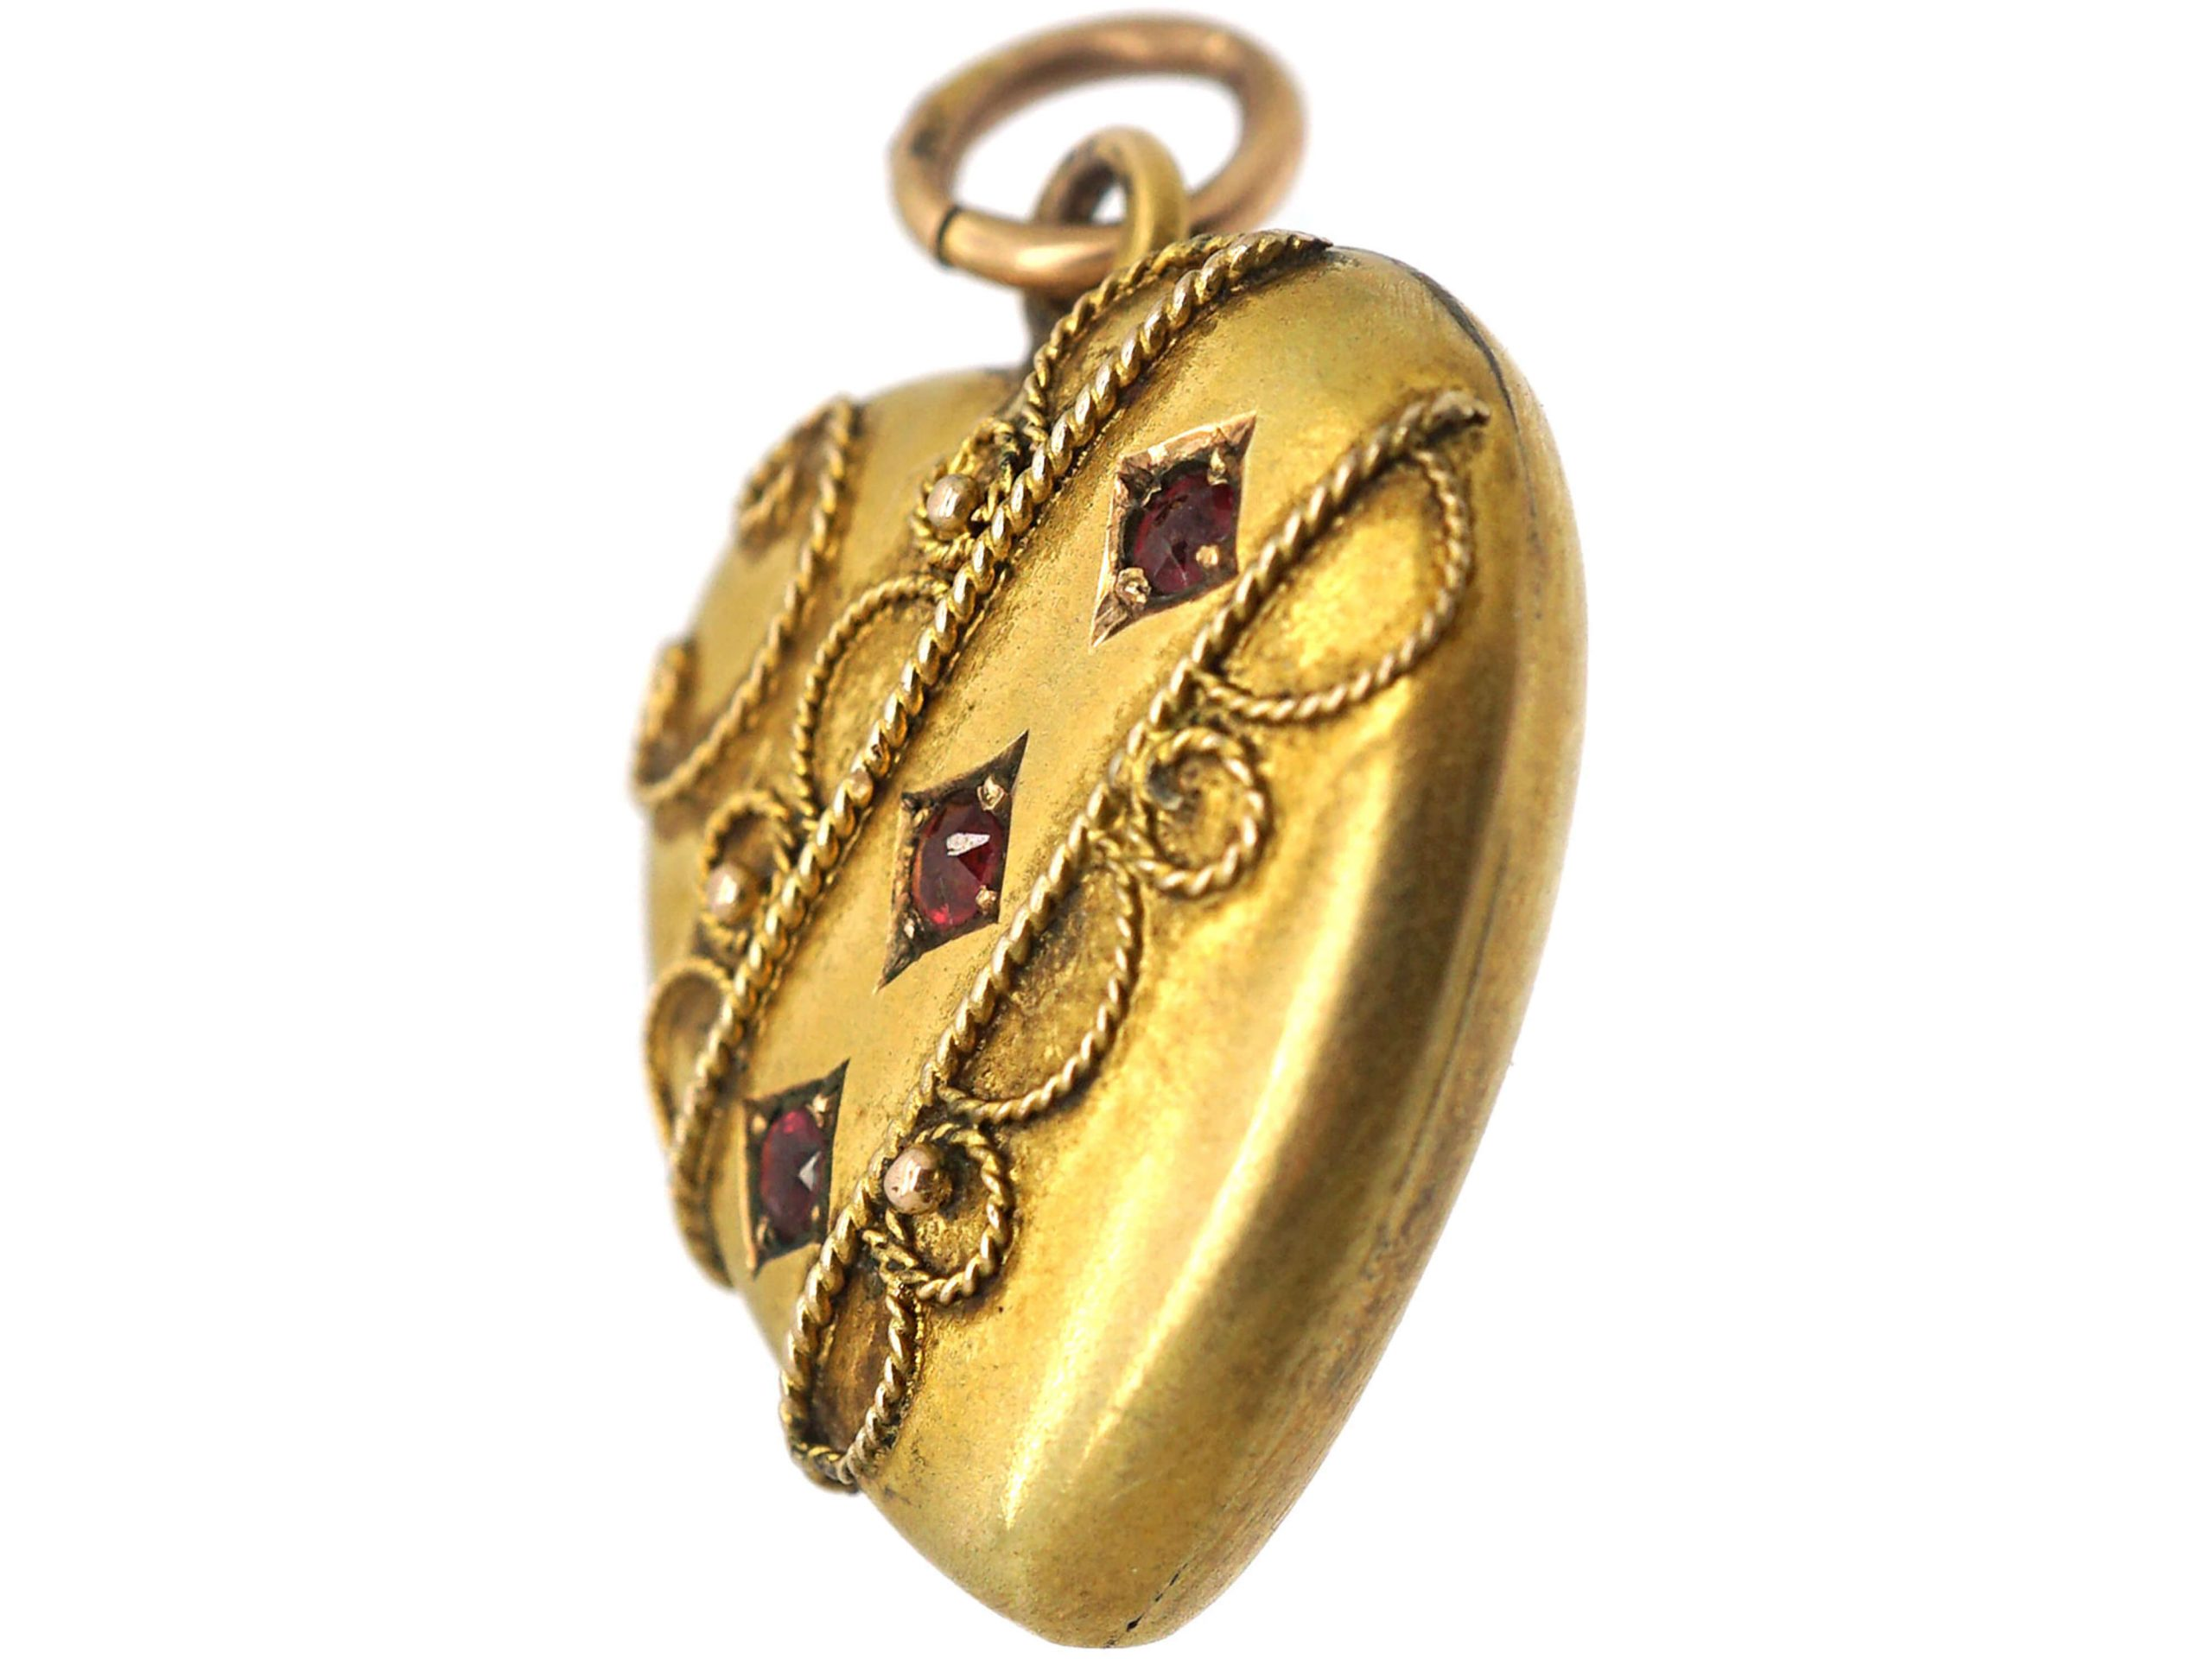 Edwardian 9ct Gold Heart Shaped Pendant set with Three Rubies